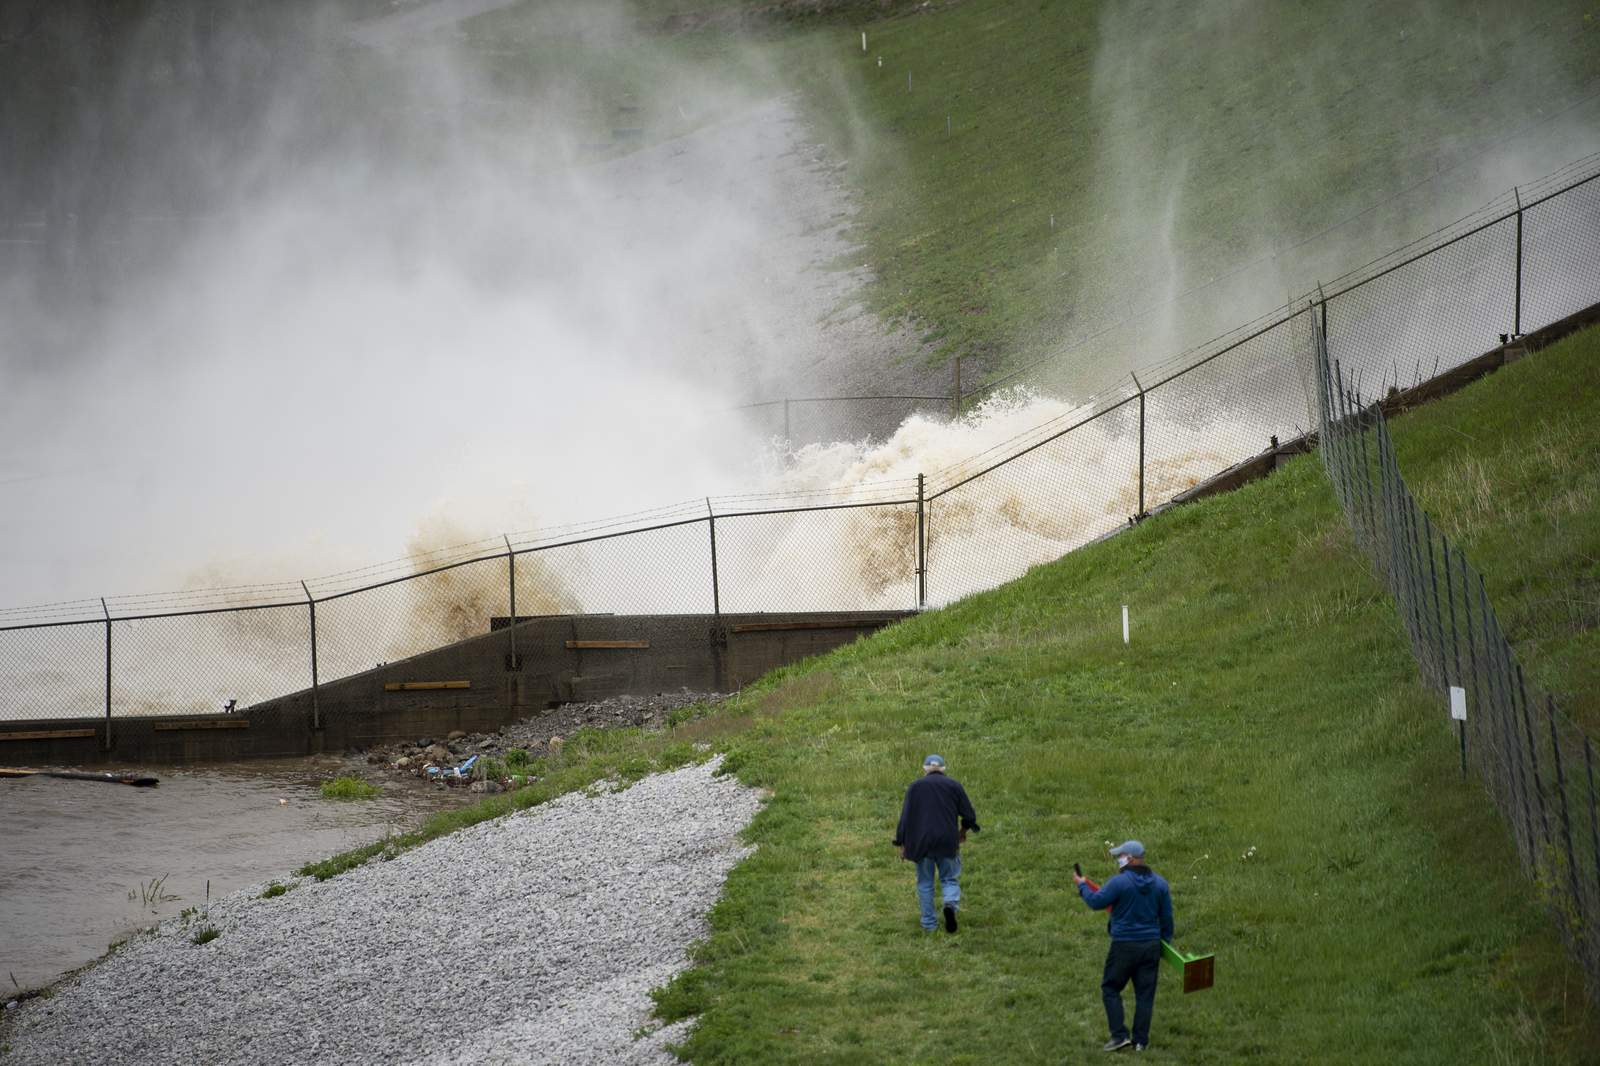 edenville dam breaks in michigan us seems to face consecutive disasters amid worst coronavirus pandemic